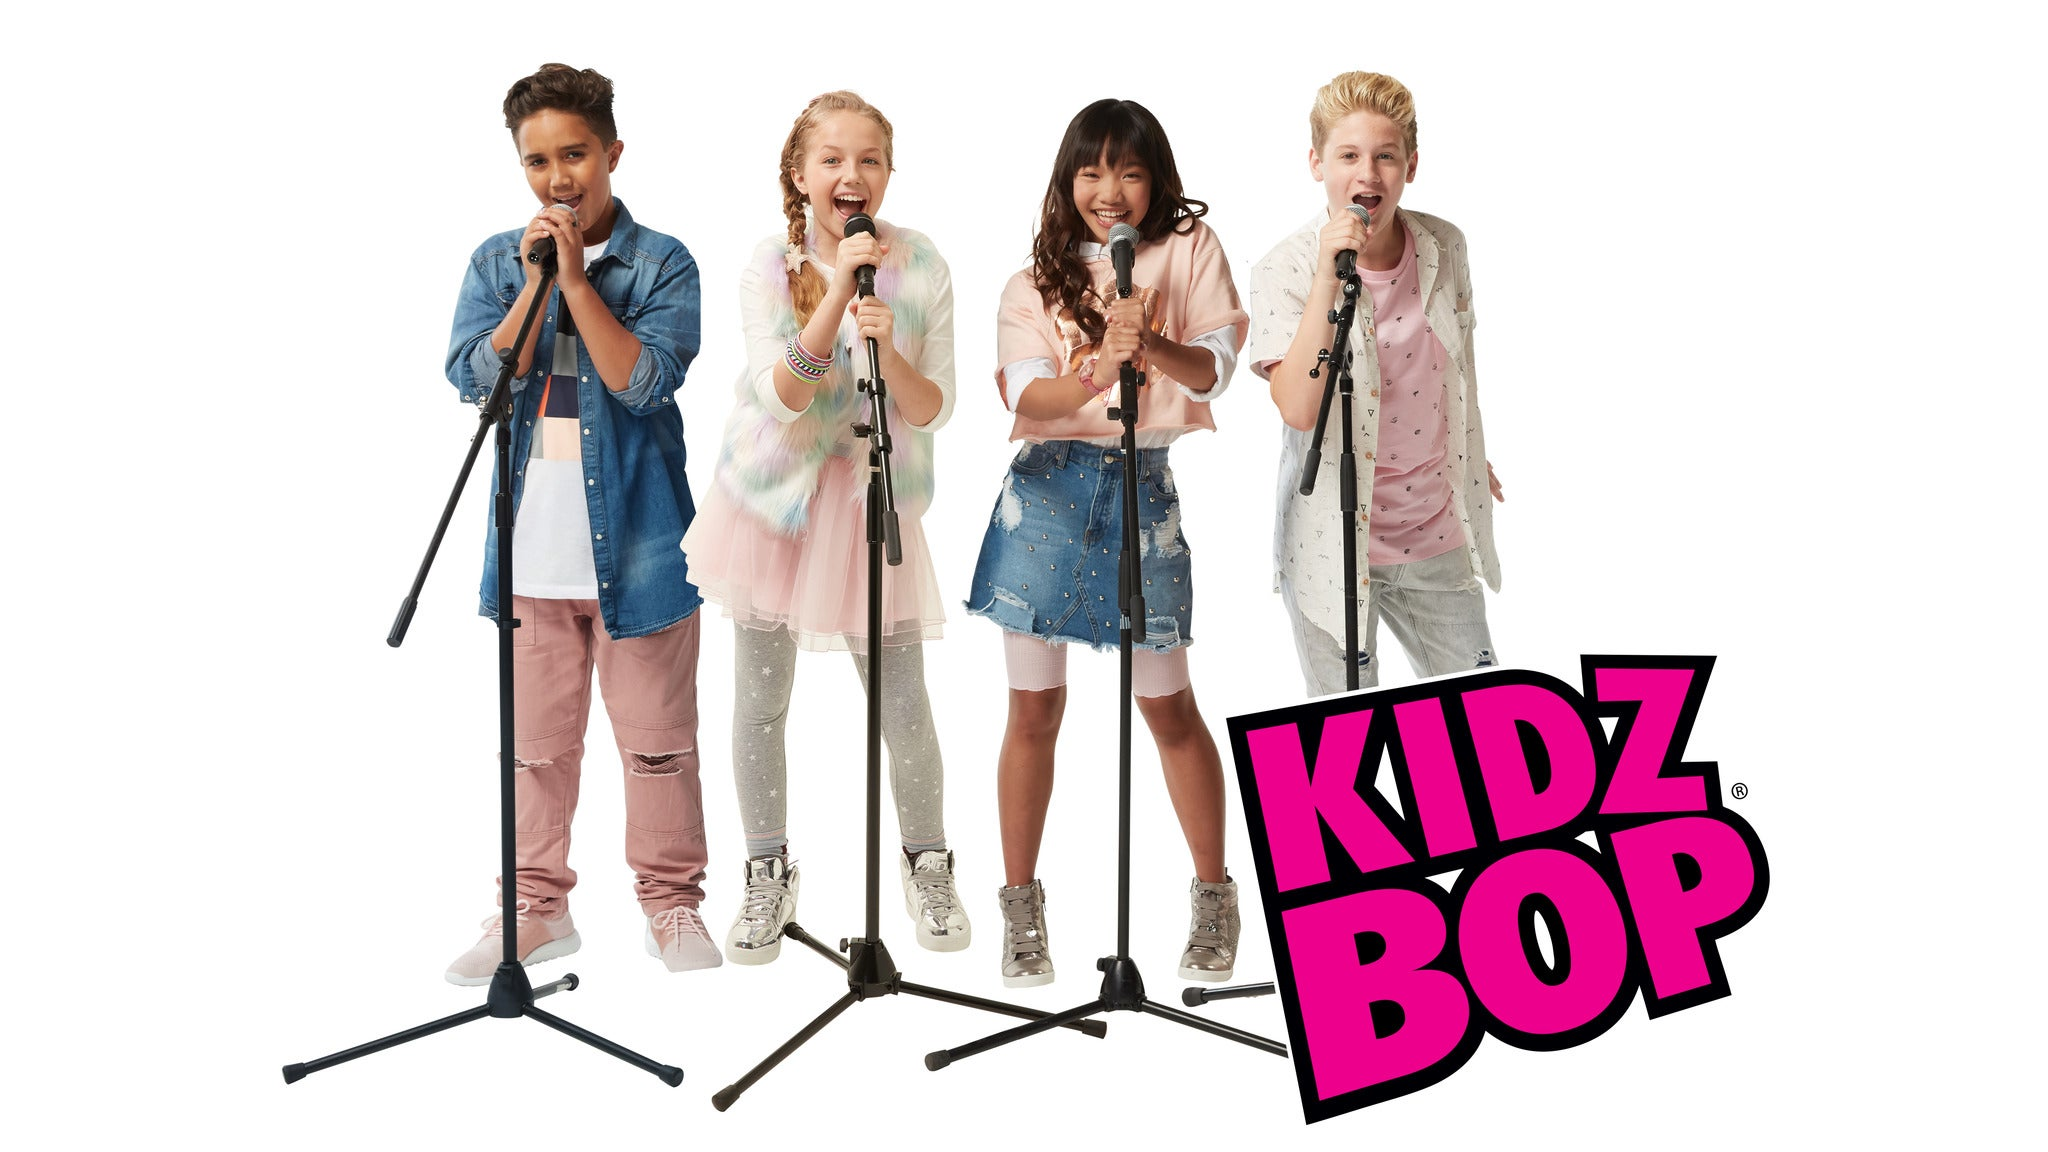 KIDZ BOP LIVE 2018 at Comerica Theatre